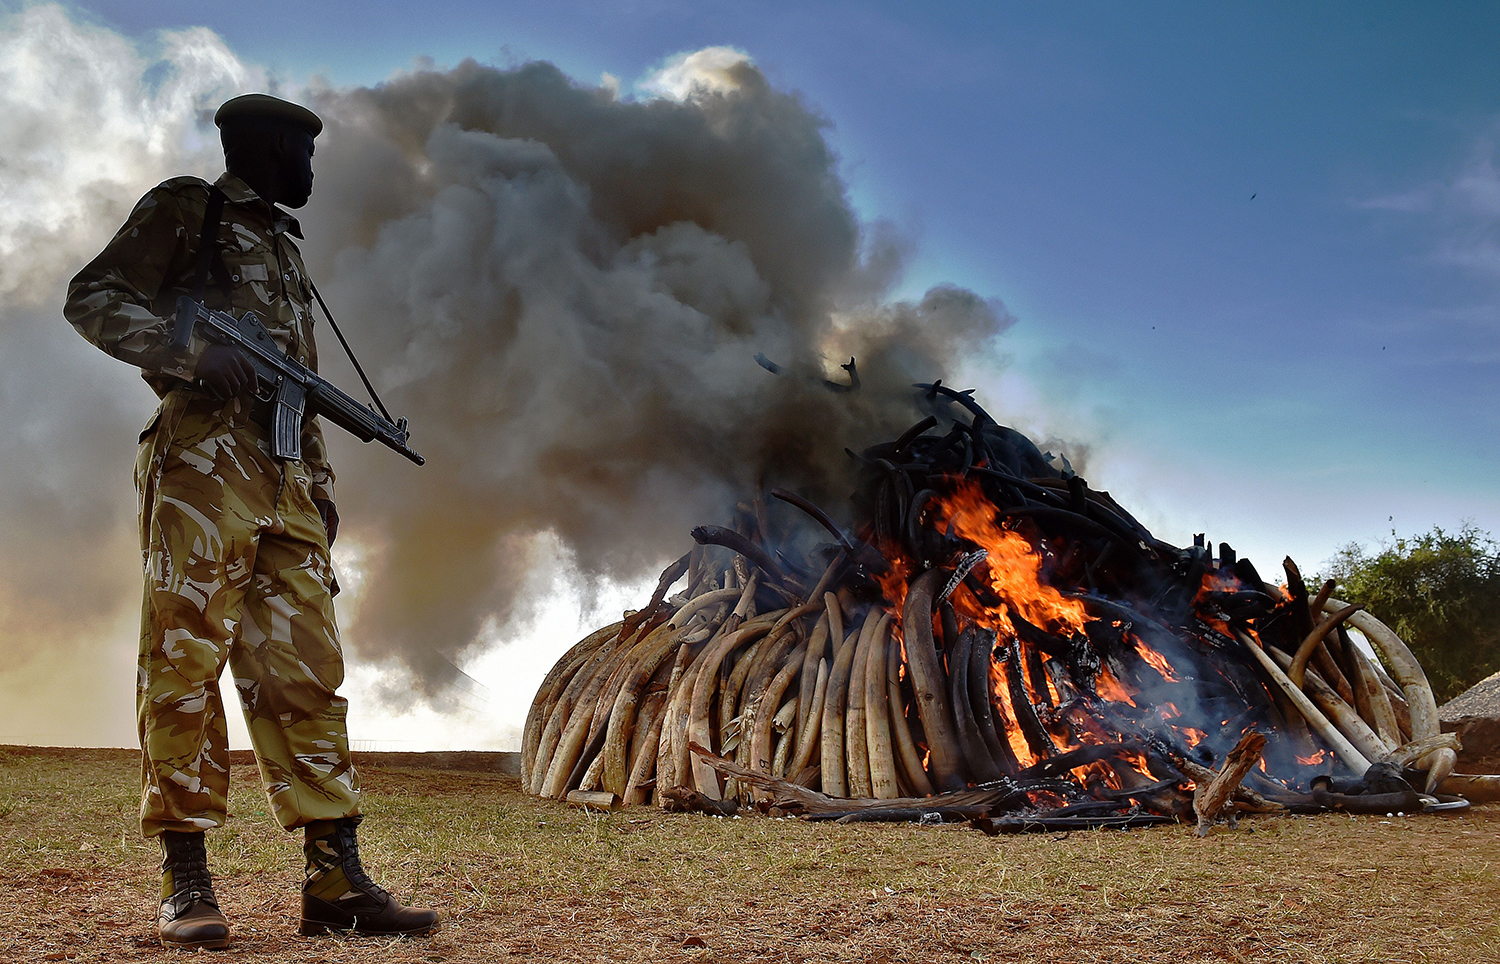 A Kenya Wildlife Services officer stands near a burning pile of elephant ivory seized in Kenya at Nairobi National Park on March 3, 2015.